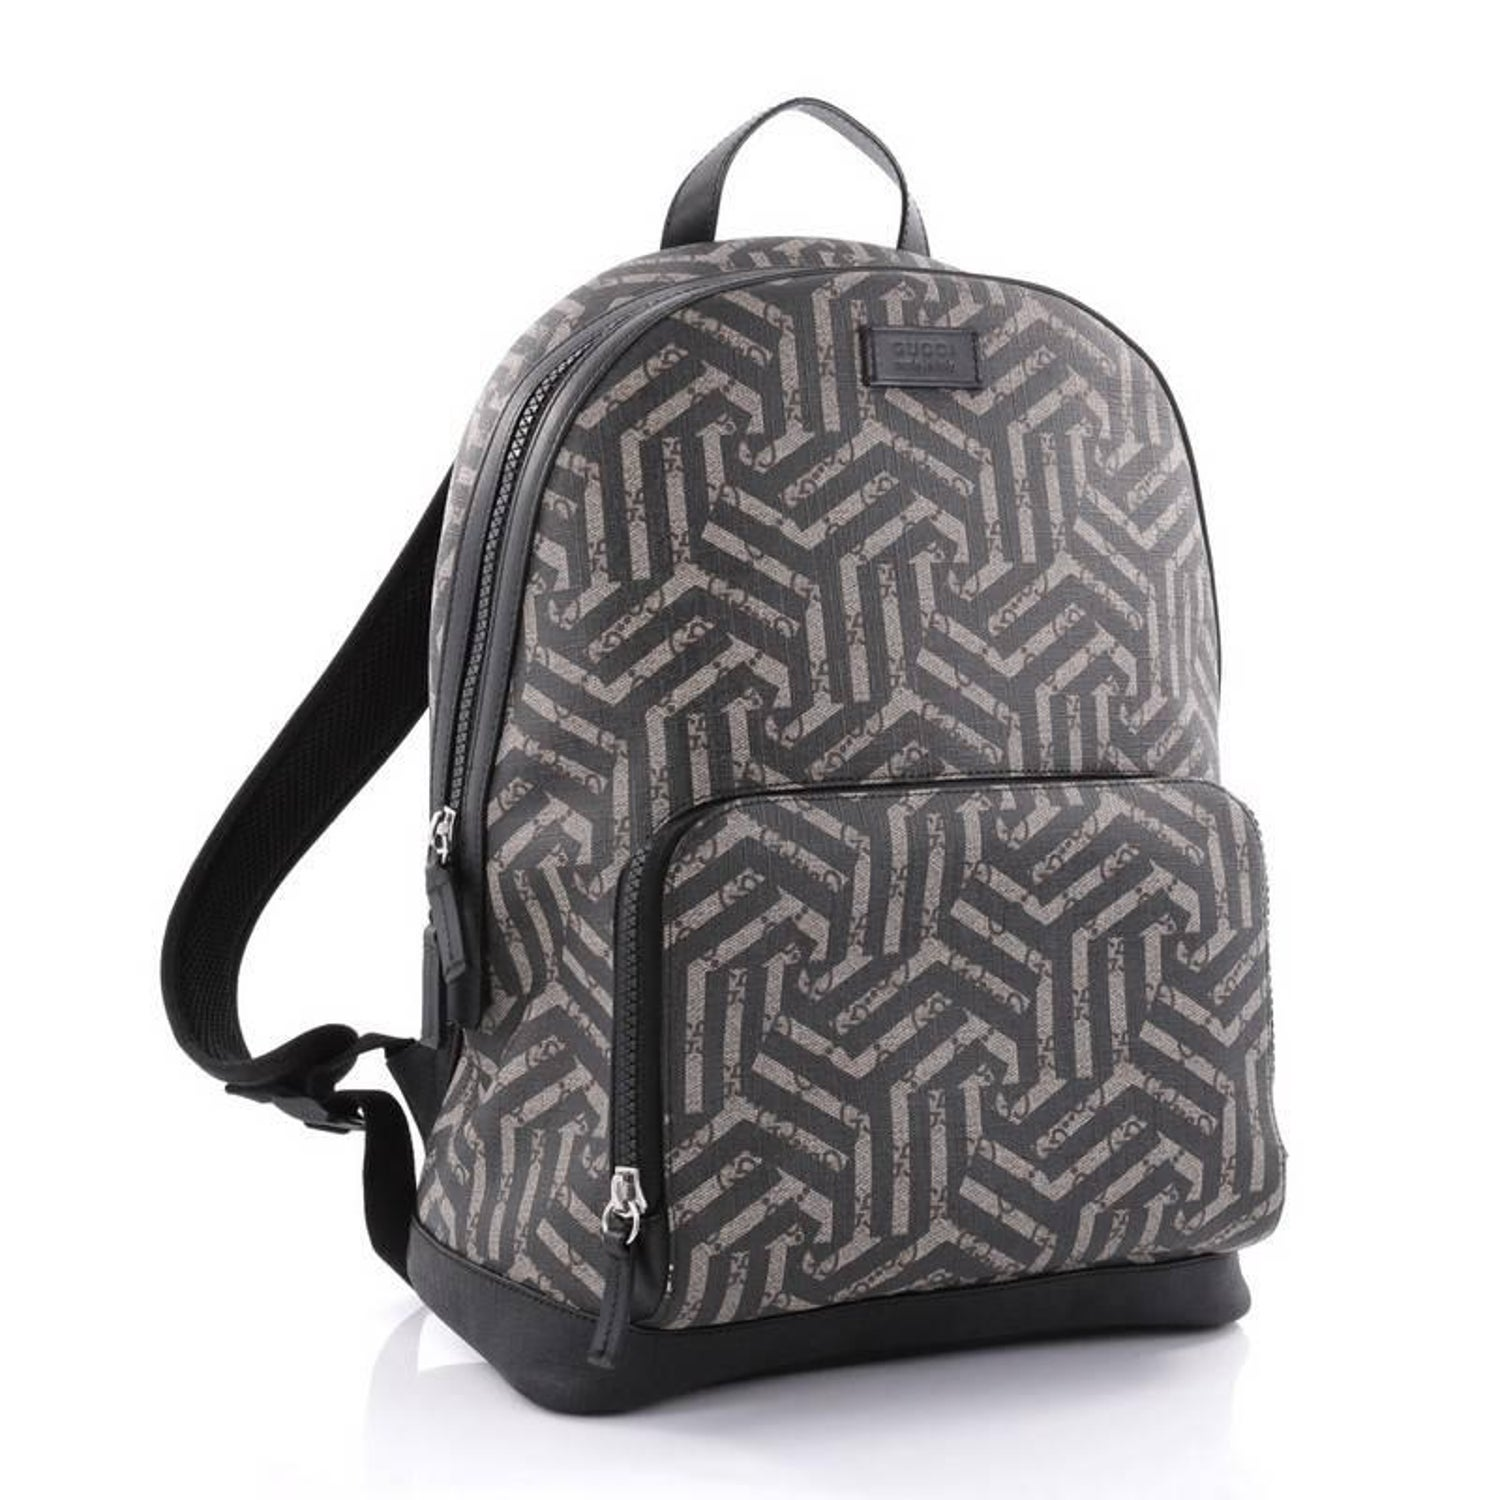 17110e1c61e Gucci Zip Pocket Backpack Caleido Print GG Coated Canvas Medium at 1stdibs